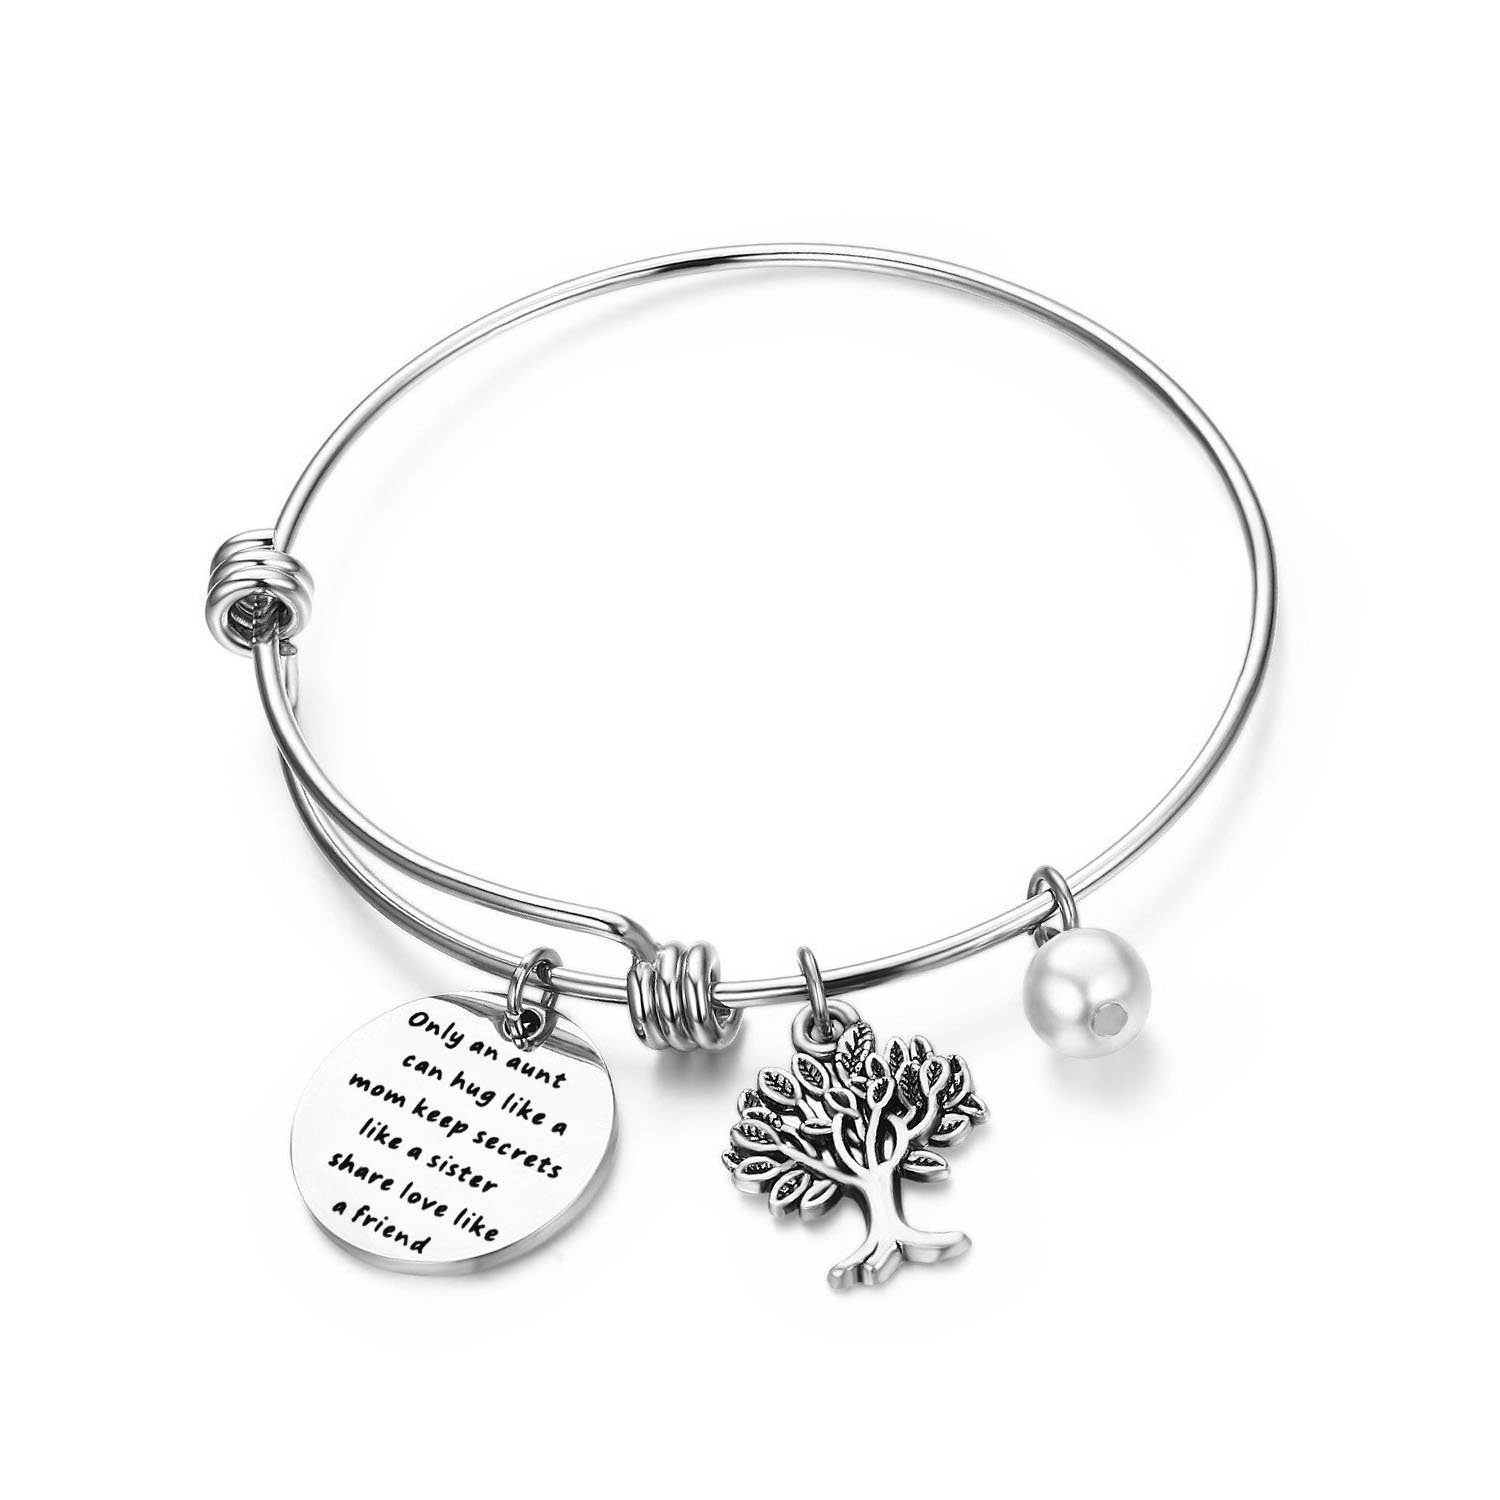 bobauna Aunt Bracelet with Family Tree Charm Only an Aunt Can Hug Like A Mom Keep Secrets Like A Sister Share Love Like A Friend Aunt Gifts from Niece